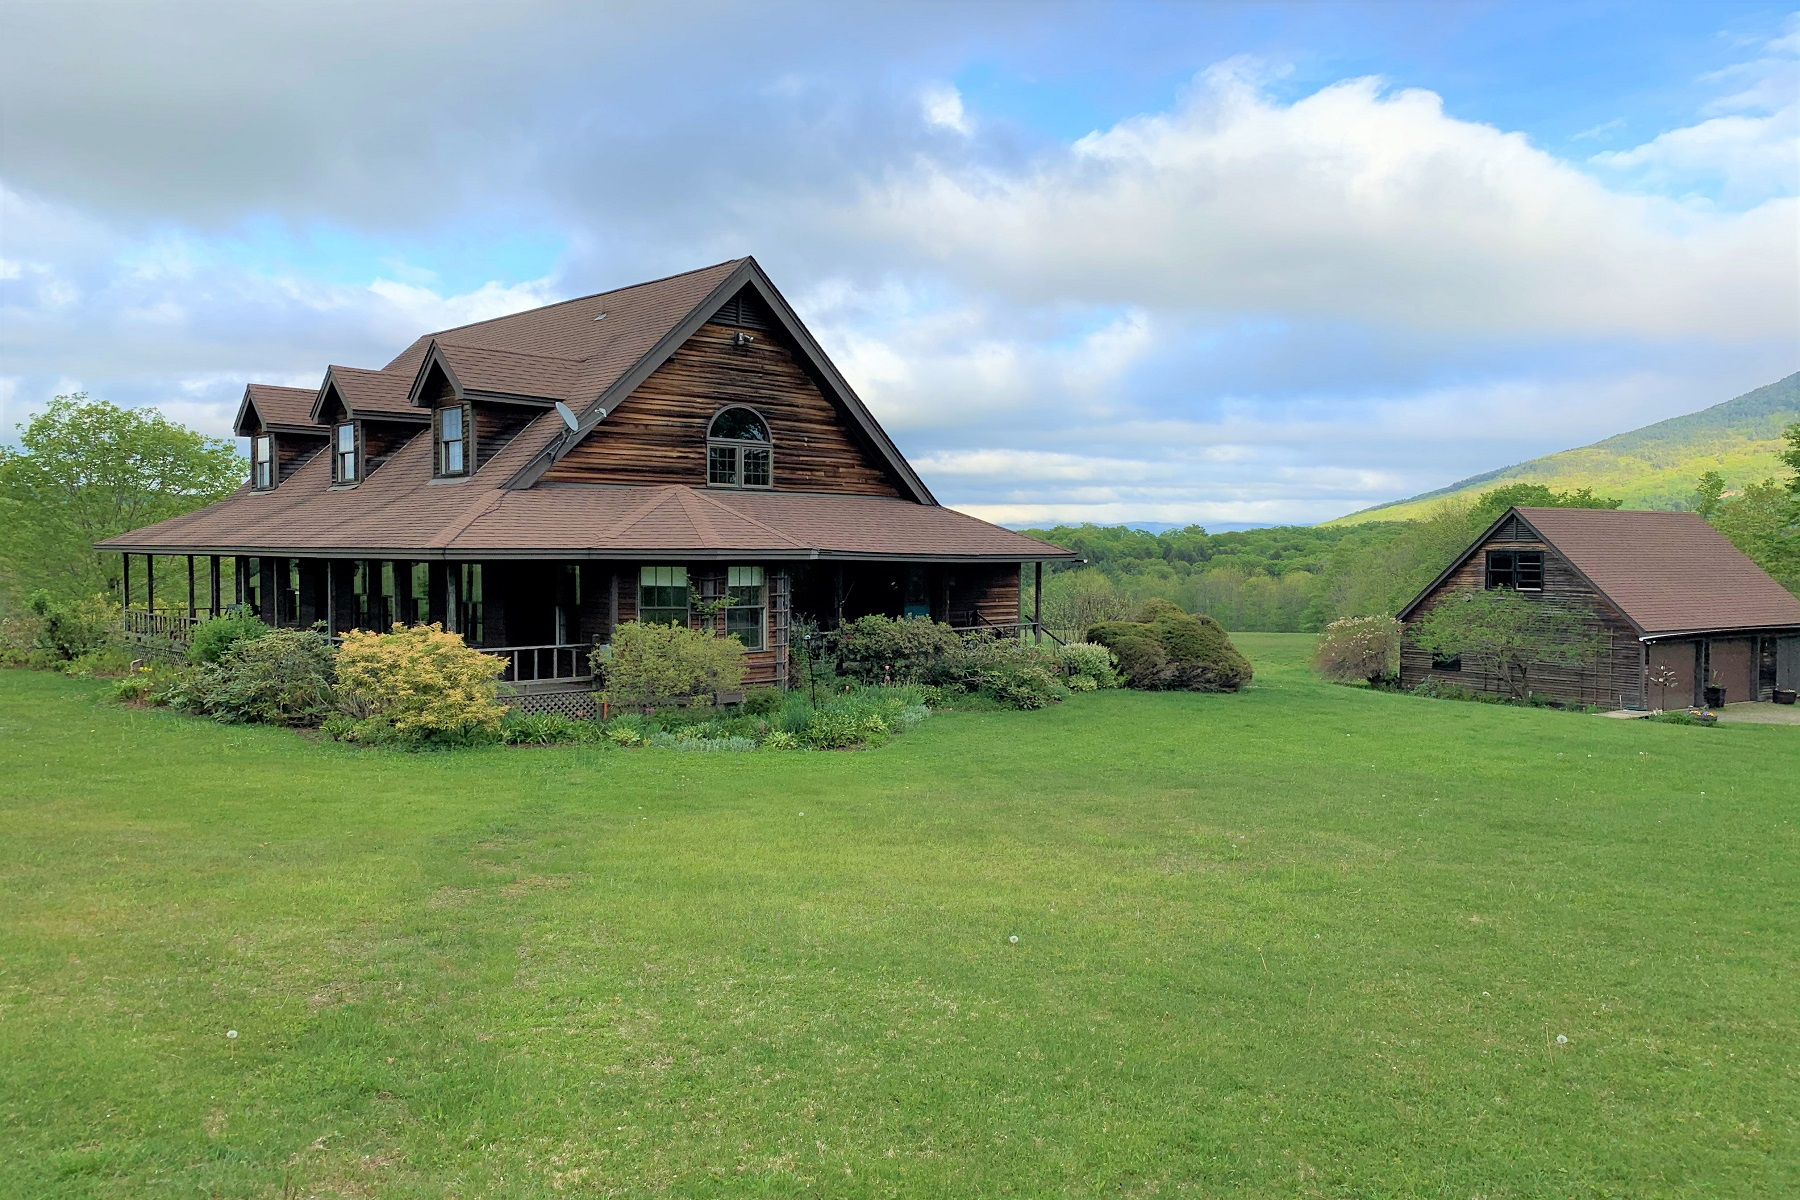 Property for Sale at Contemporary Farmhouse 968 Bible Hill Road West Windsor, Vermont 05037 United States